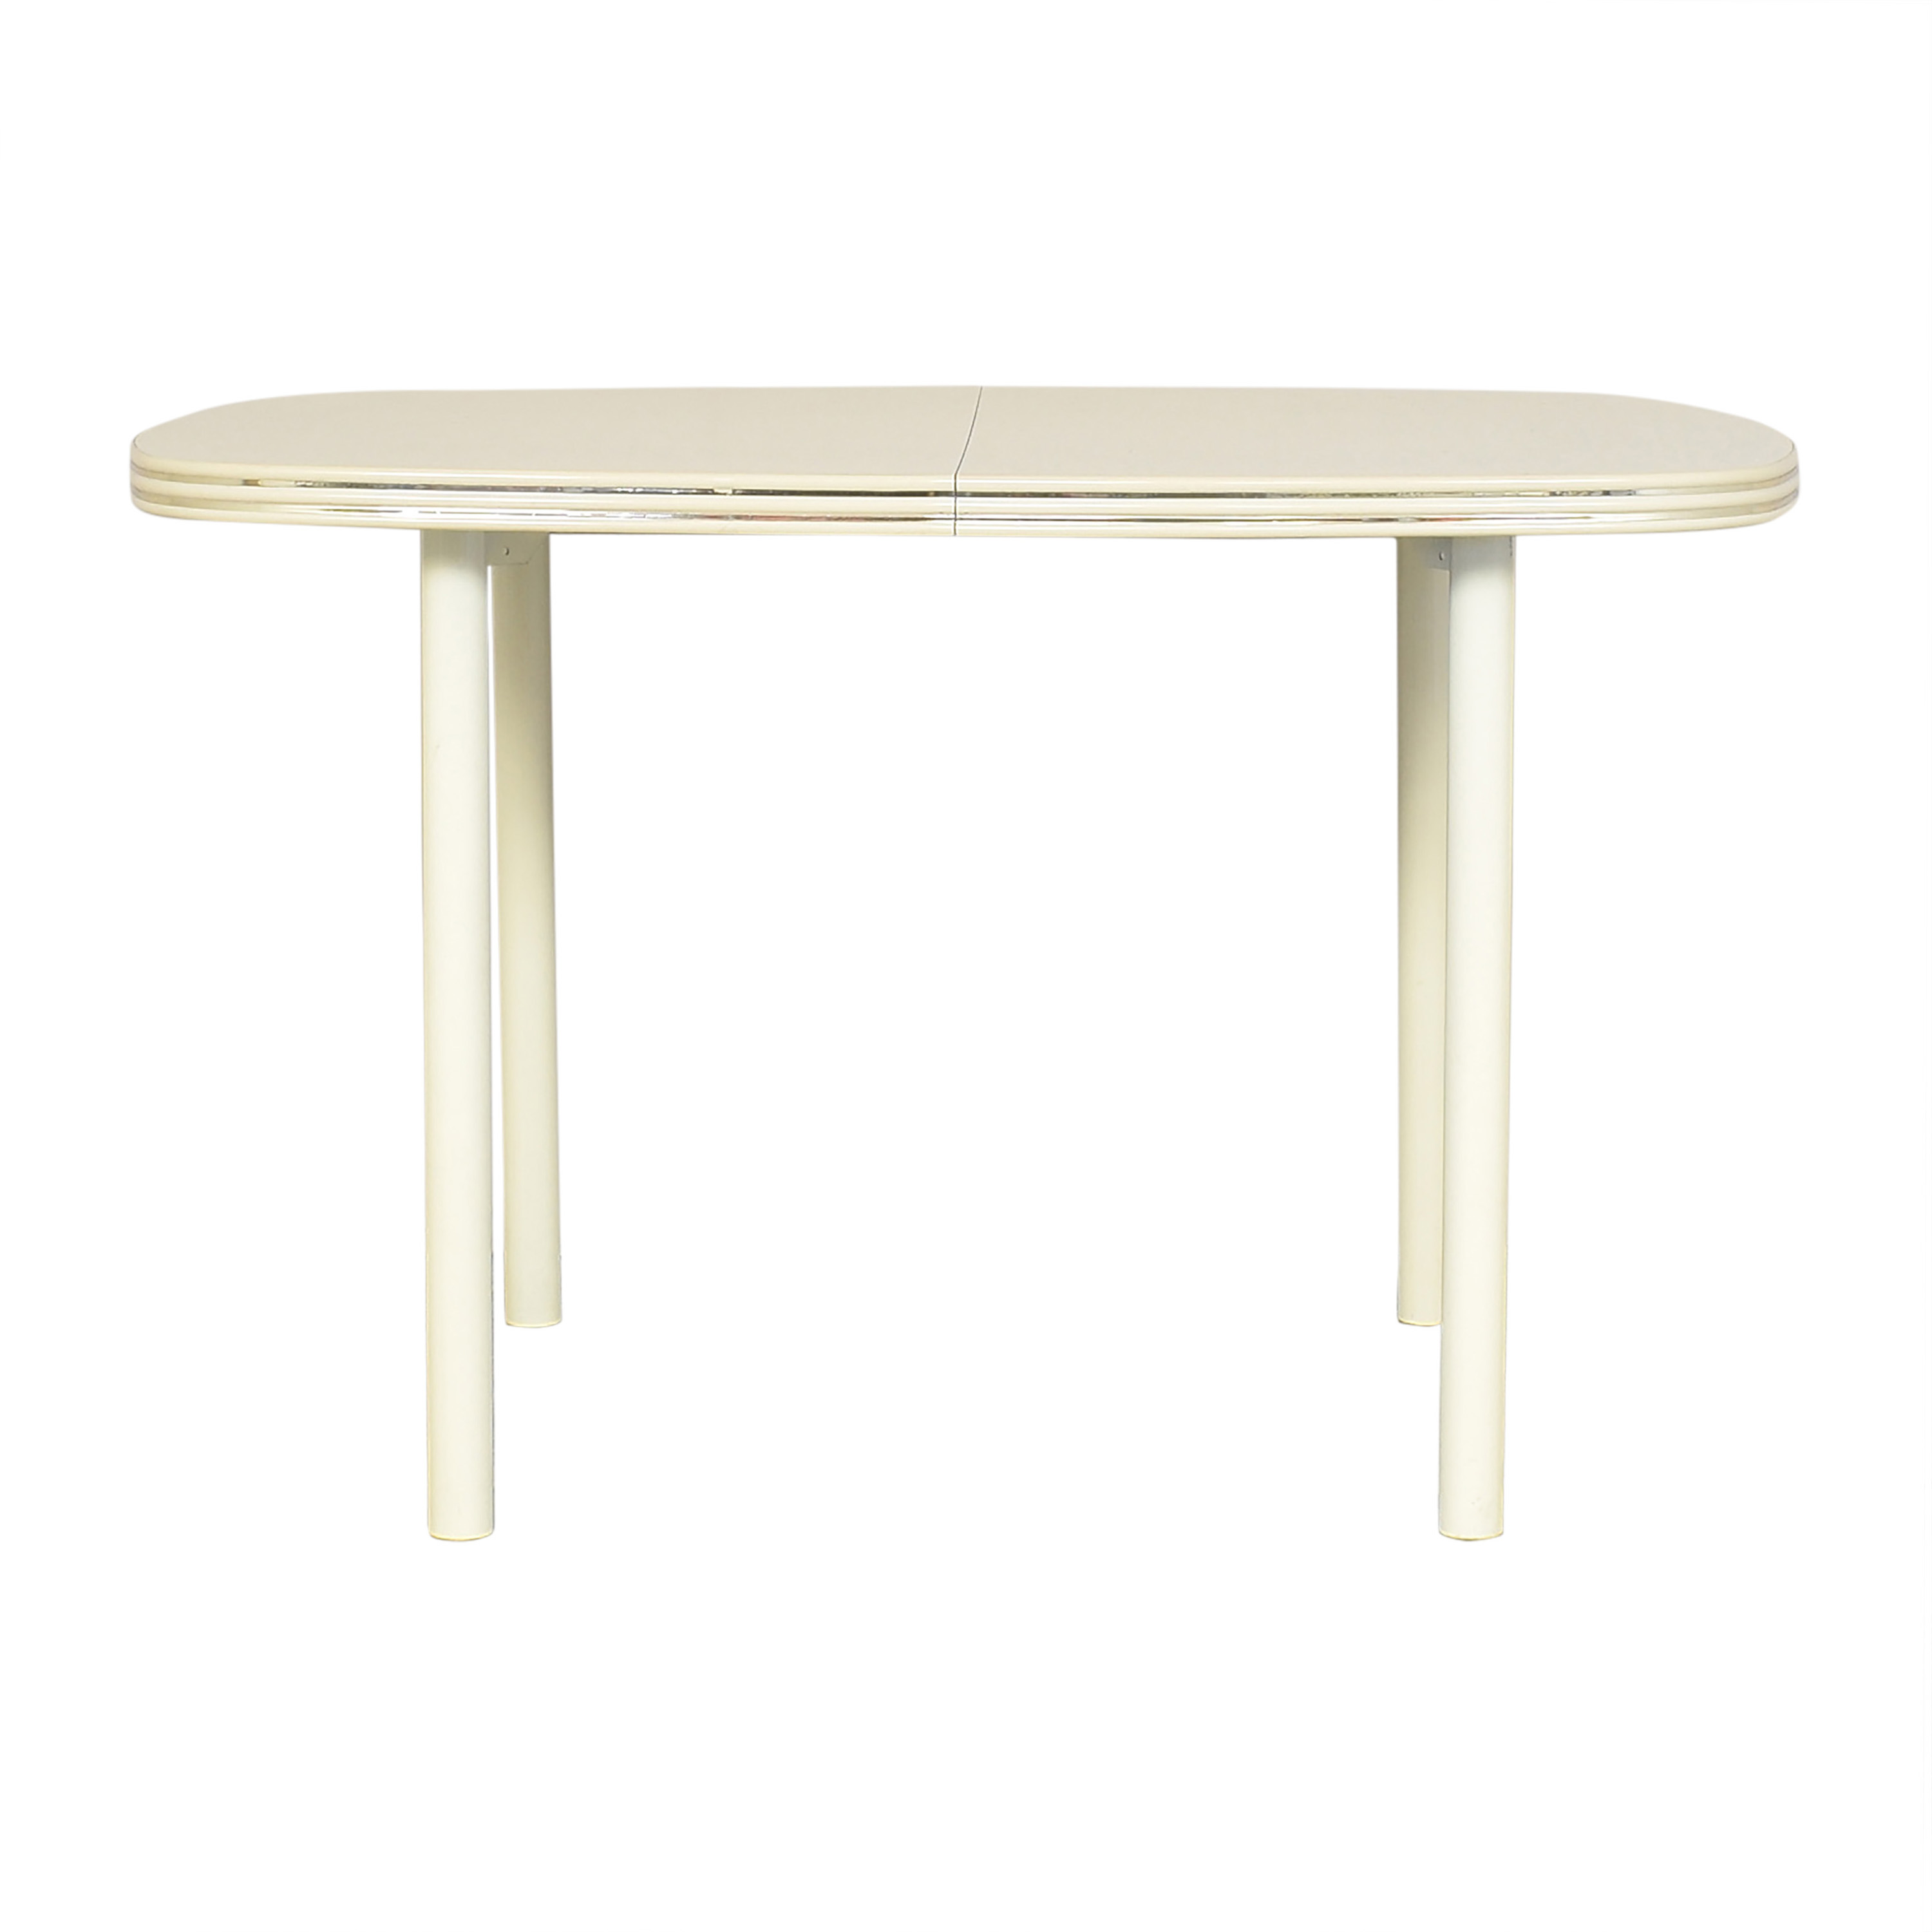 Progressive Furniture Extendable Dining Table sale